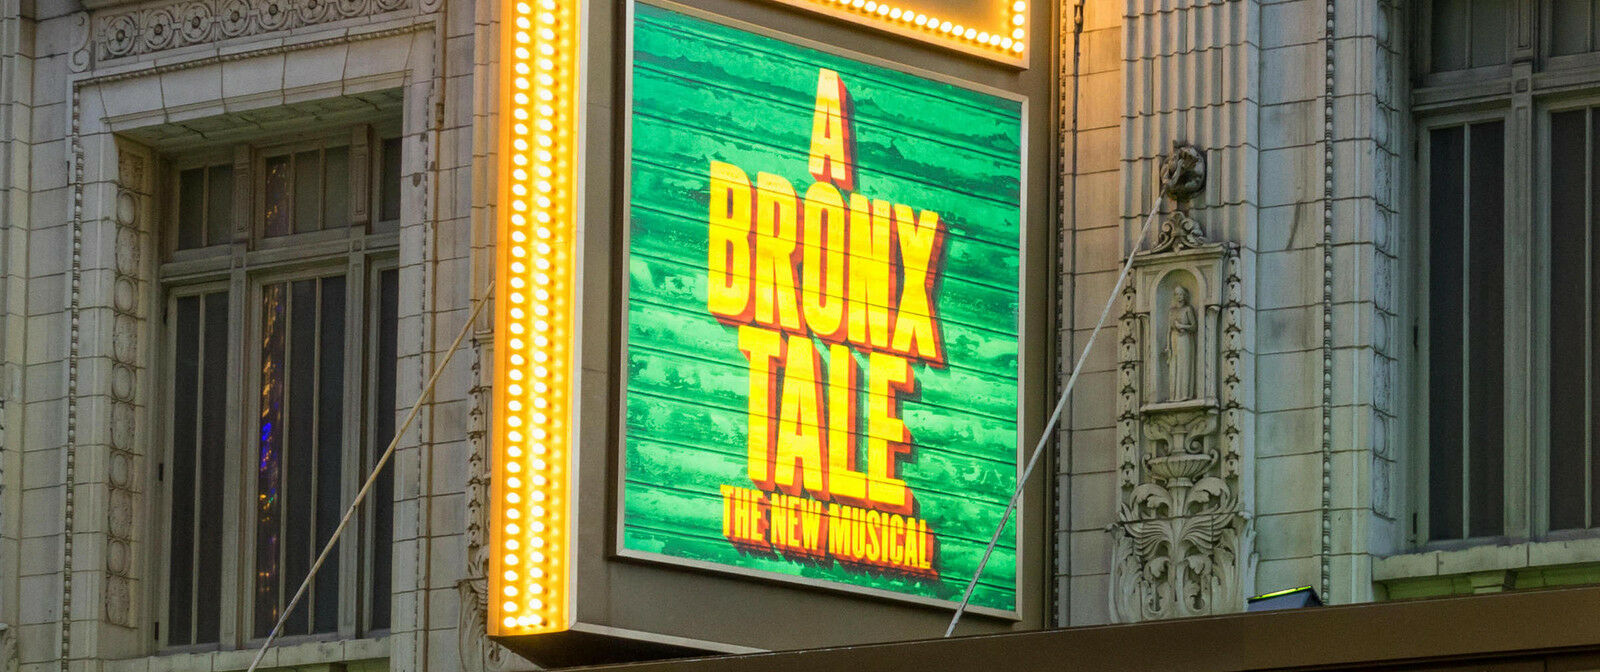 A Bronx Tale Washington DC